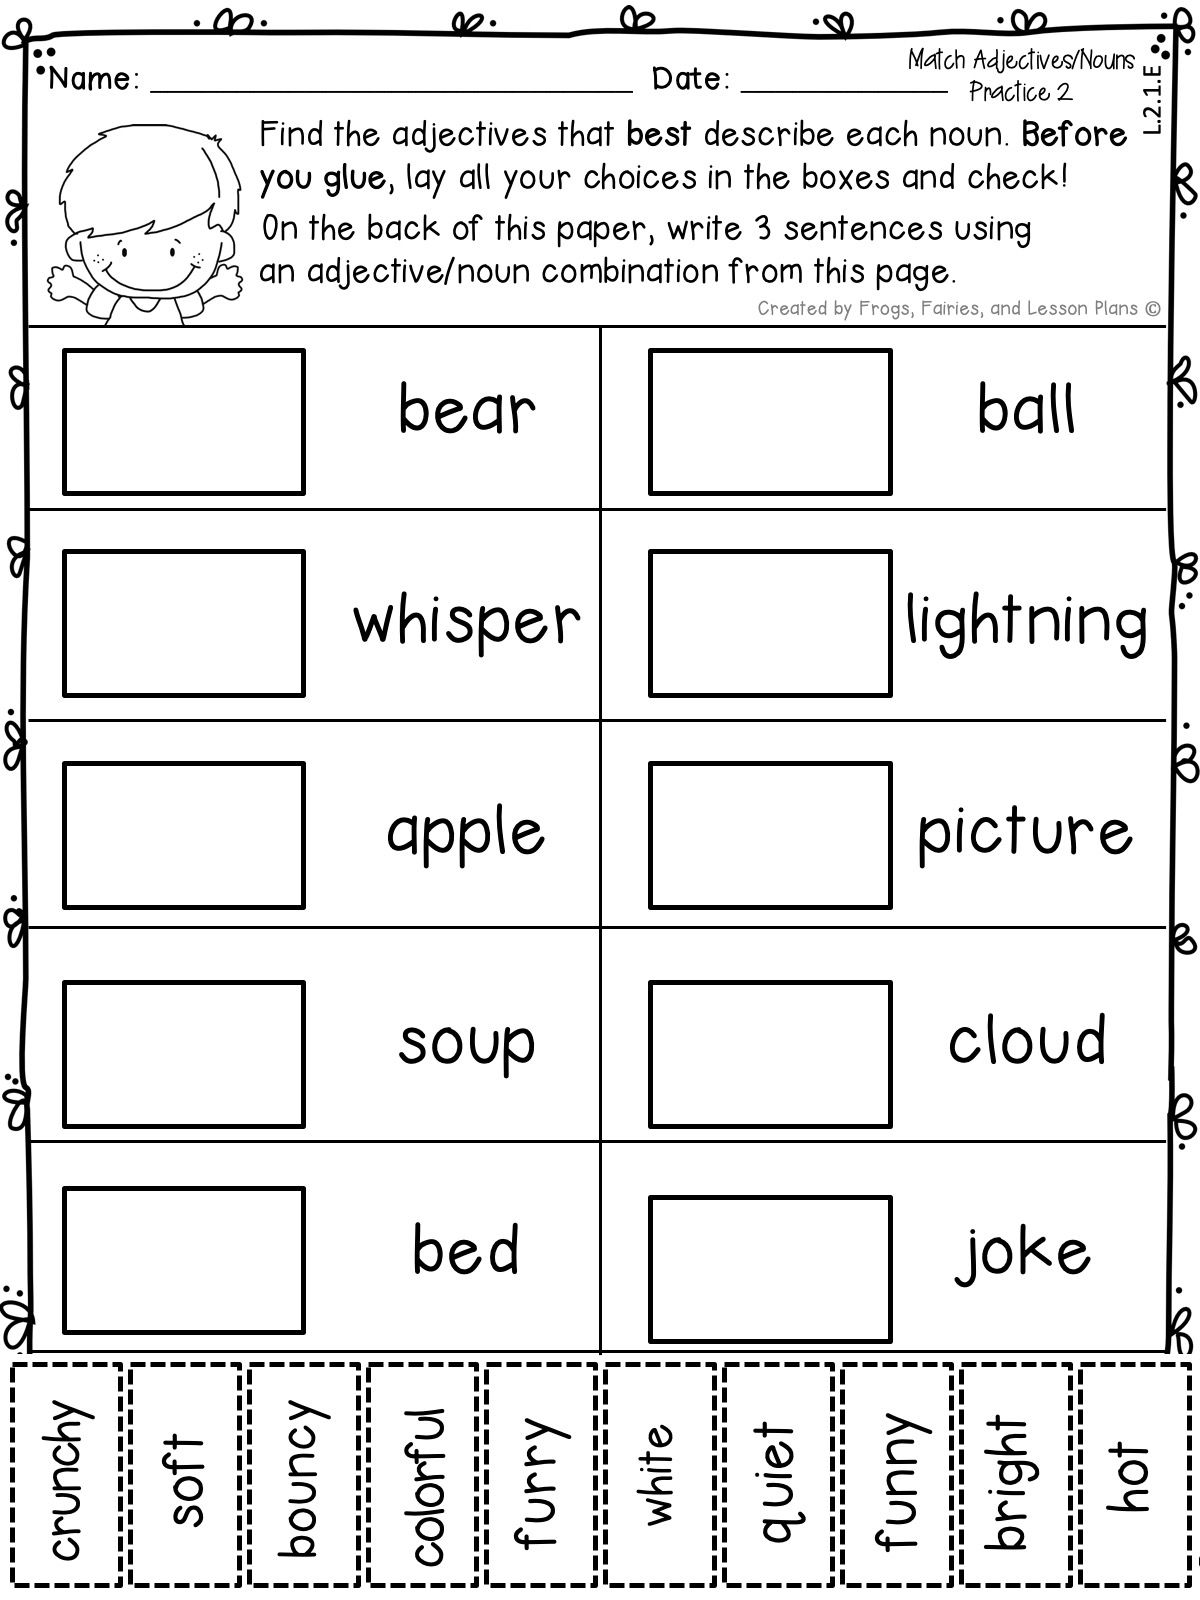 Adjective and Adverb Resources for 2nd Graders   Adjectives activities [ 1600 x 1200 Pixel ]